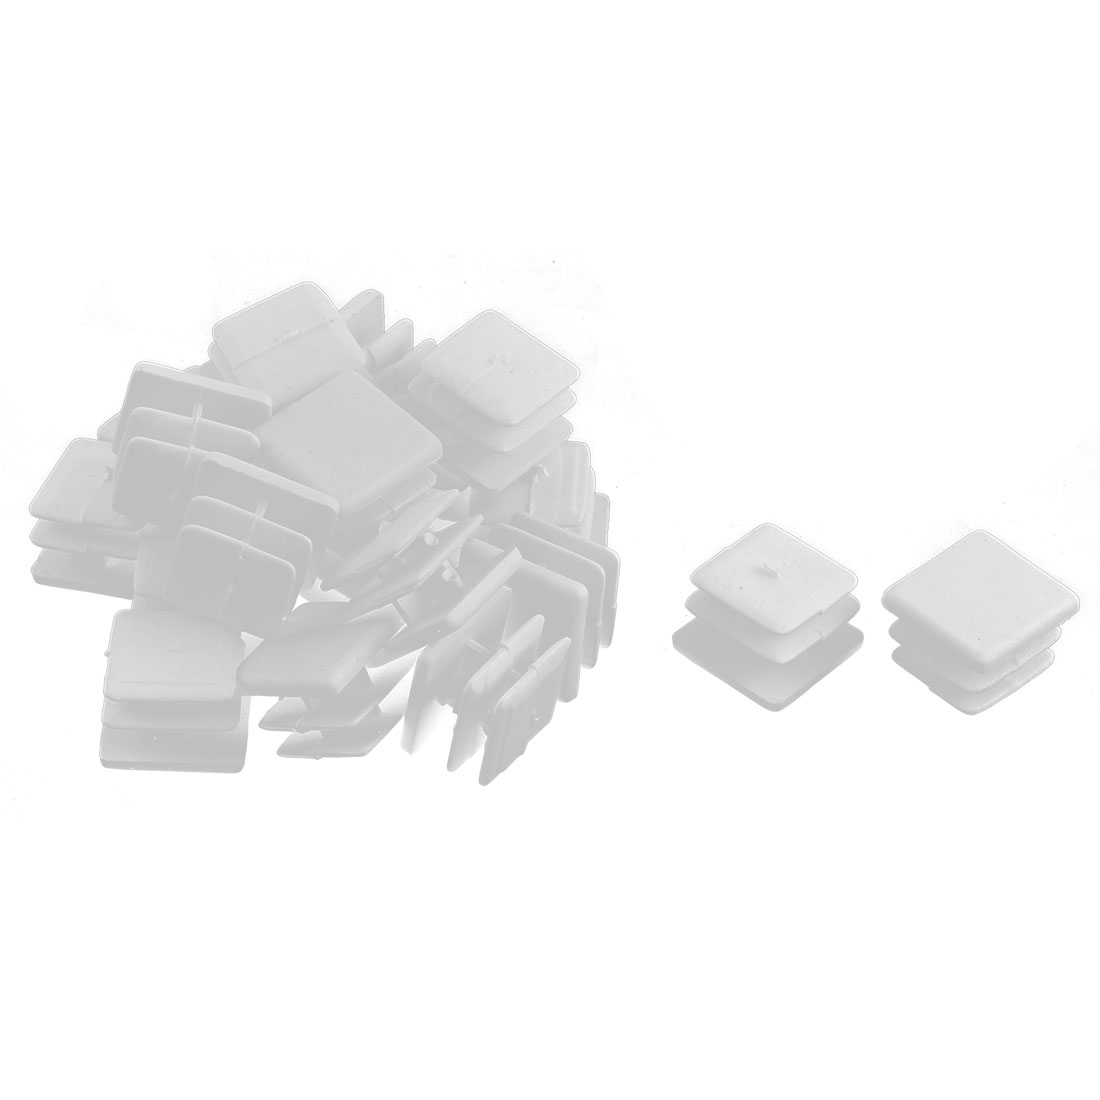 Plastic Square Tube Pipe Inserts End Blanking Caps White 15mmx15mm 20 Pcs